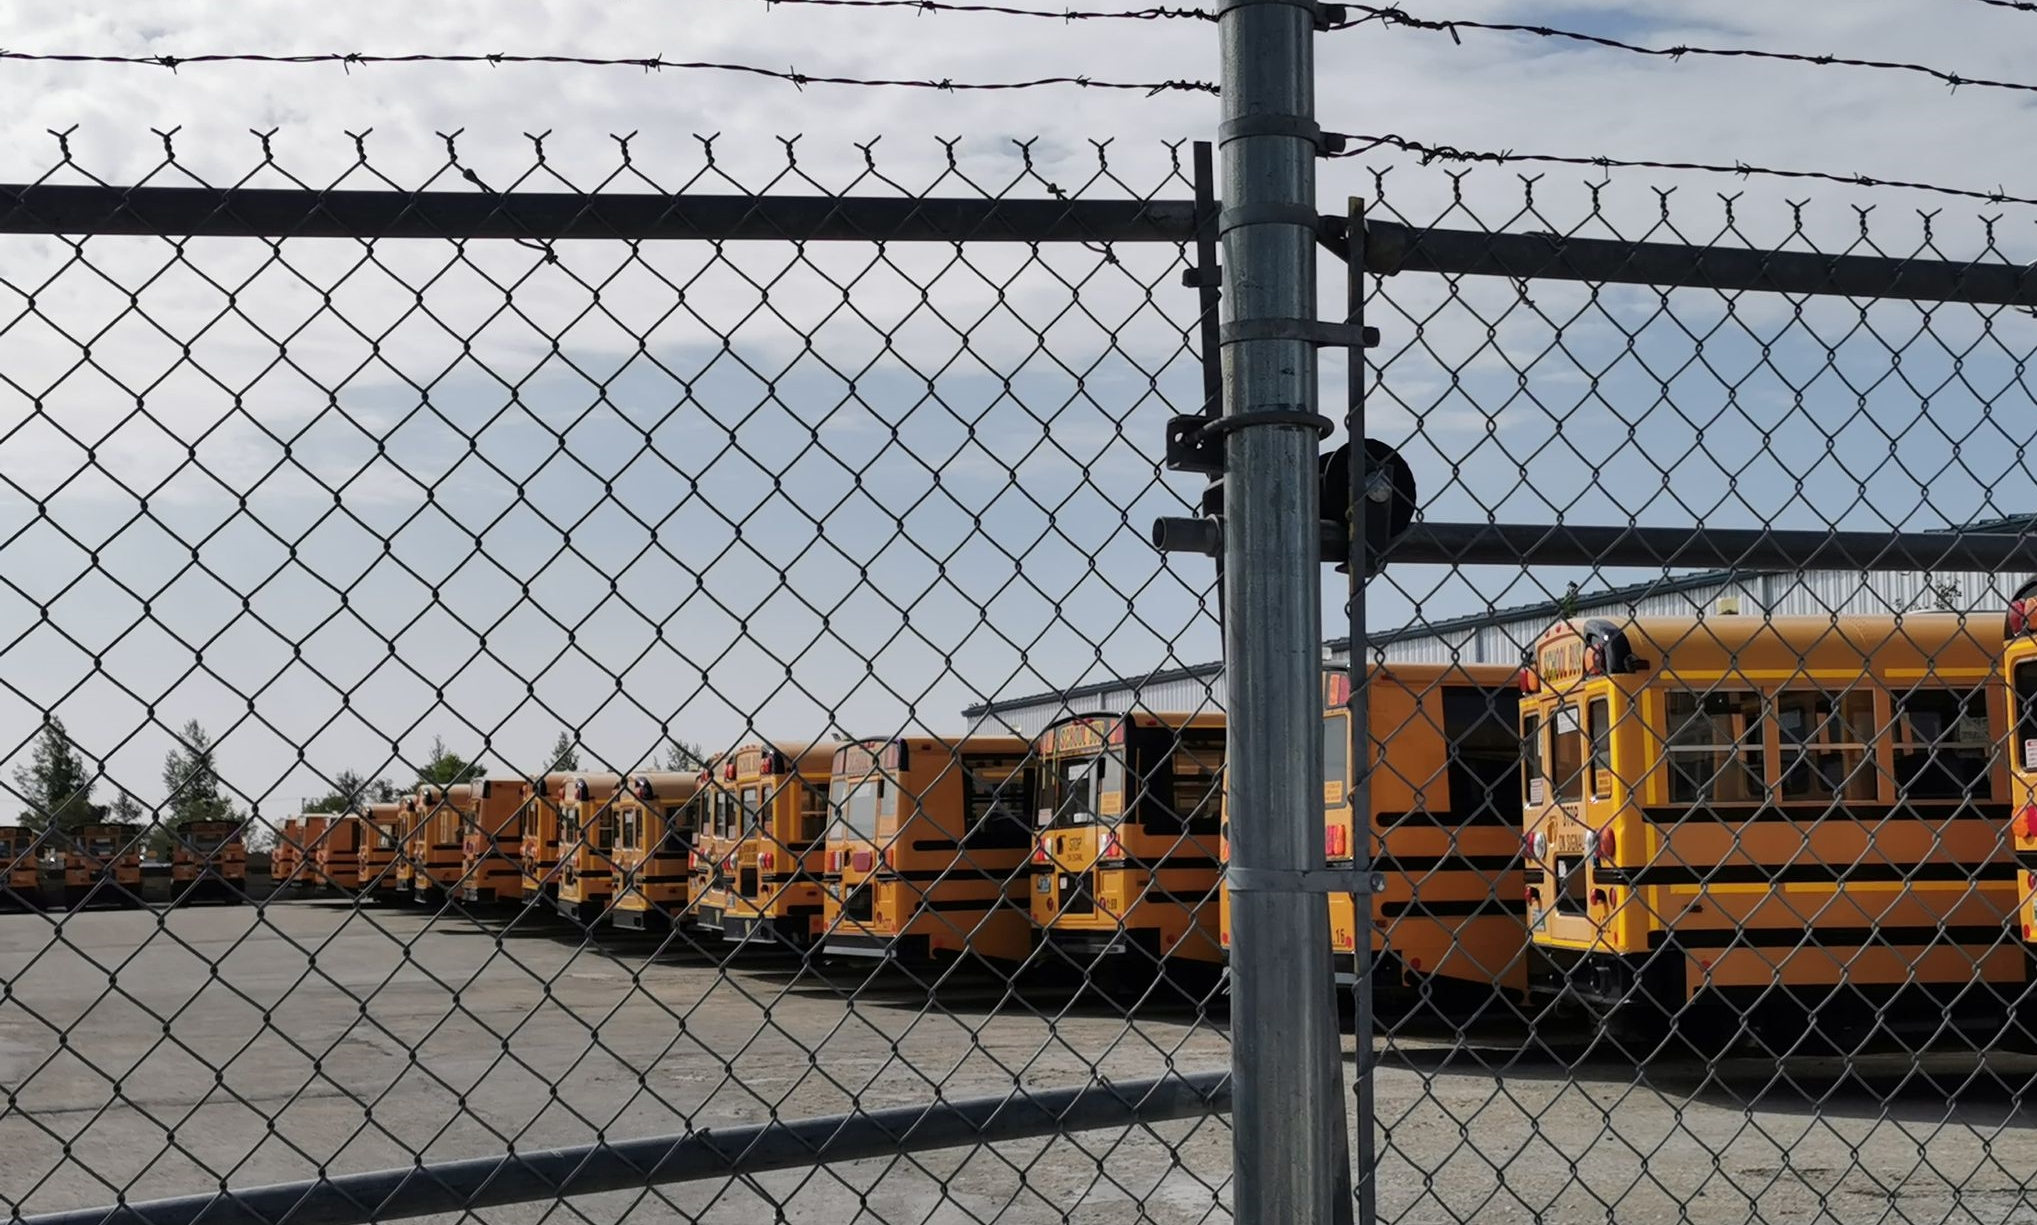 bus behind fence